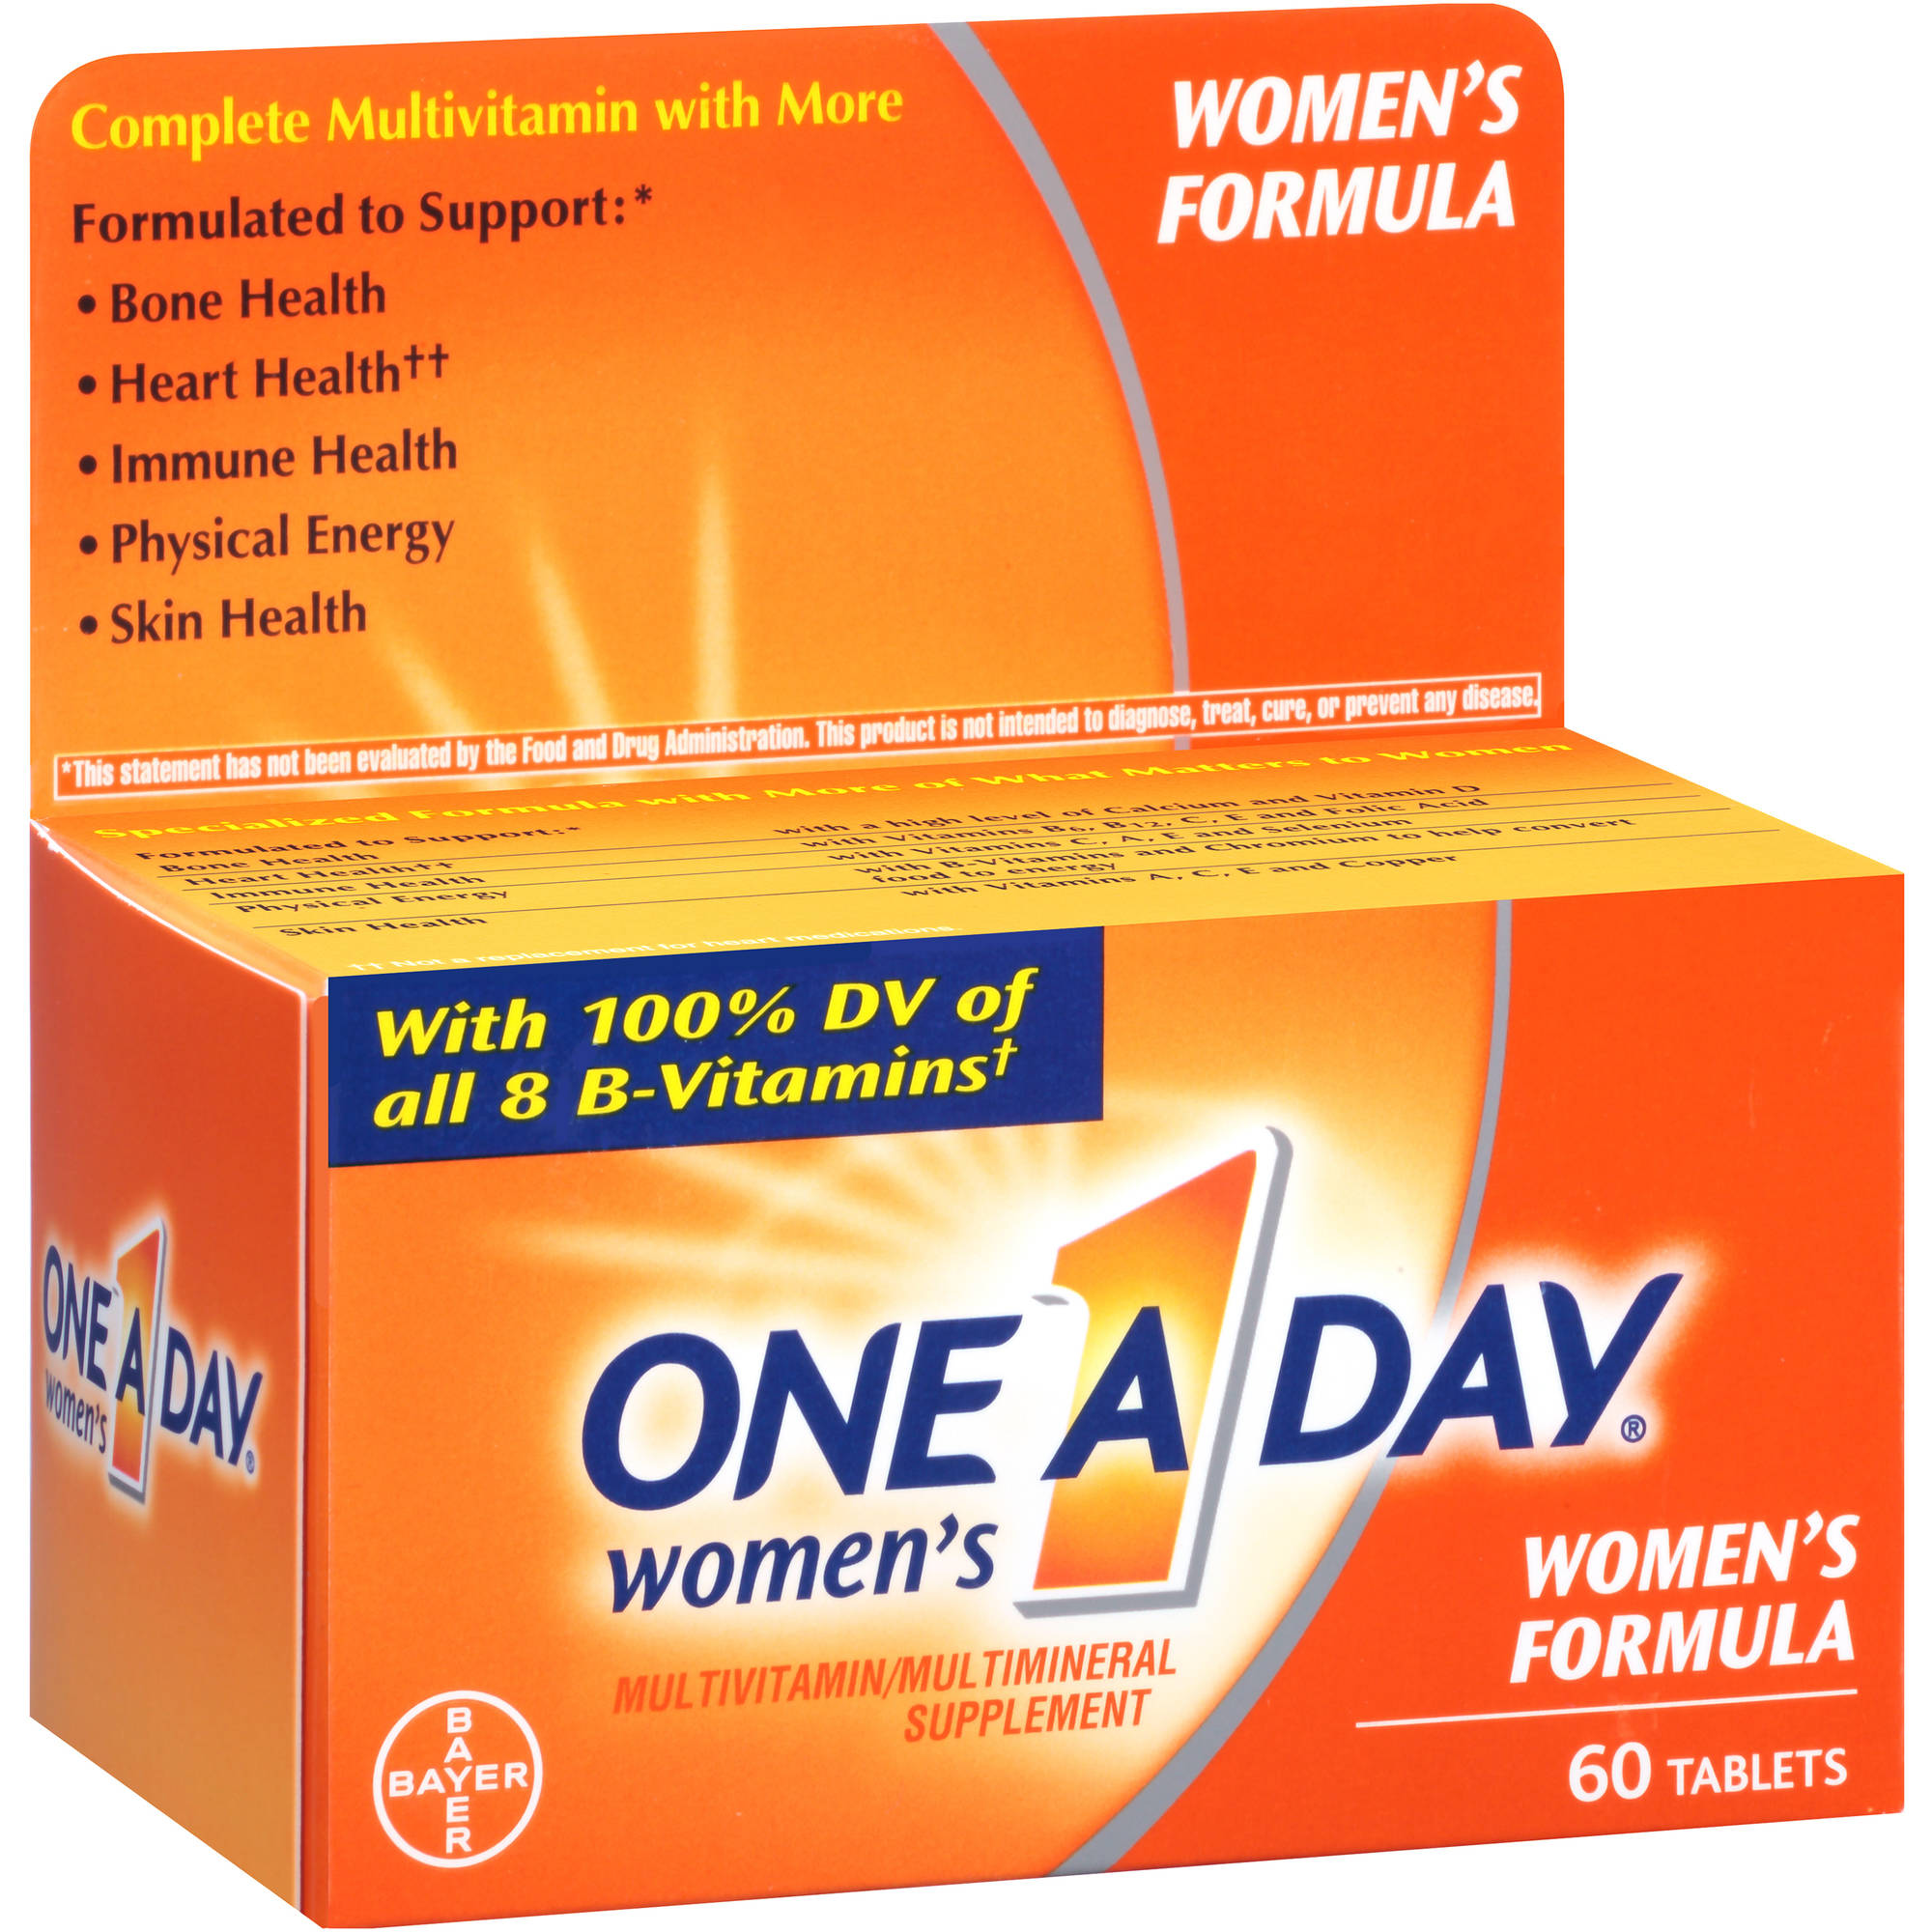 One A Day Women's Multivitamin/Multimineral Supplement Tablets, 60 count